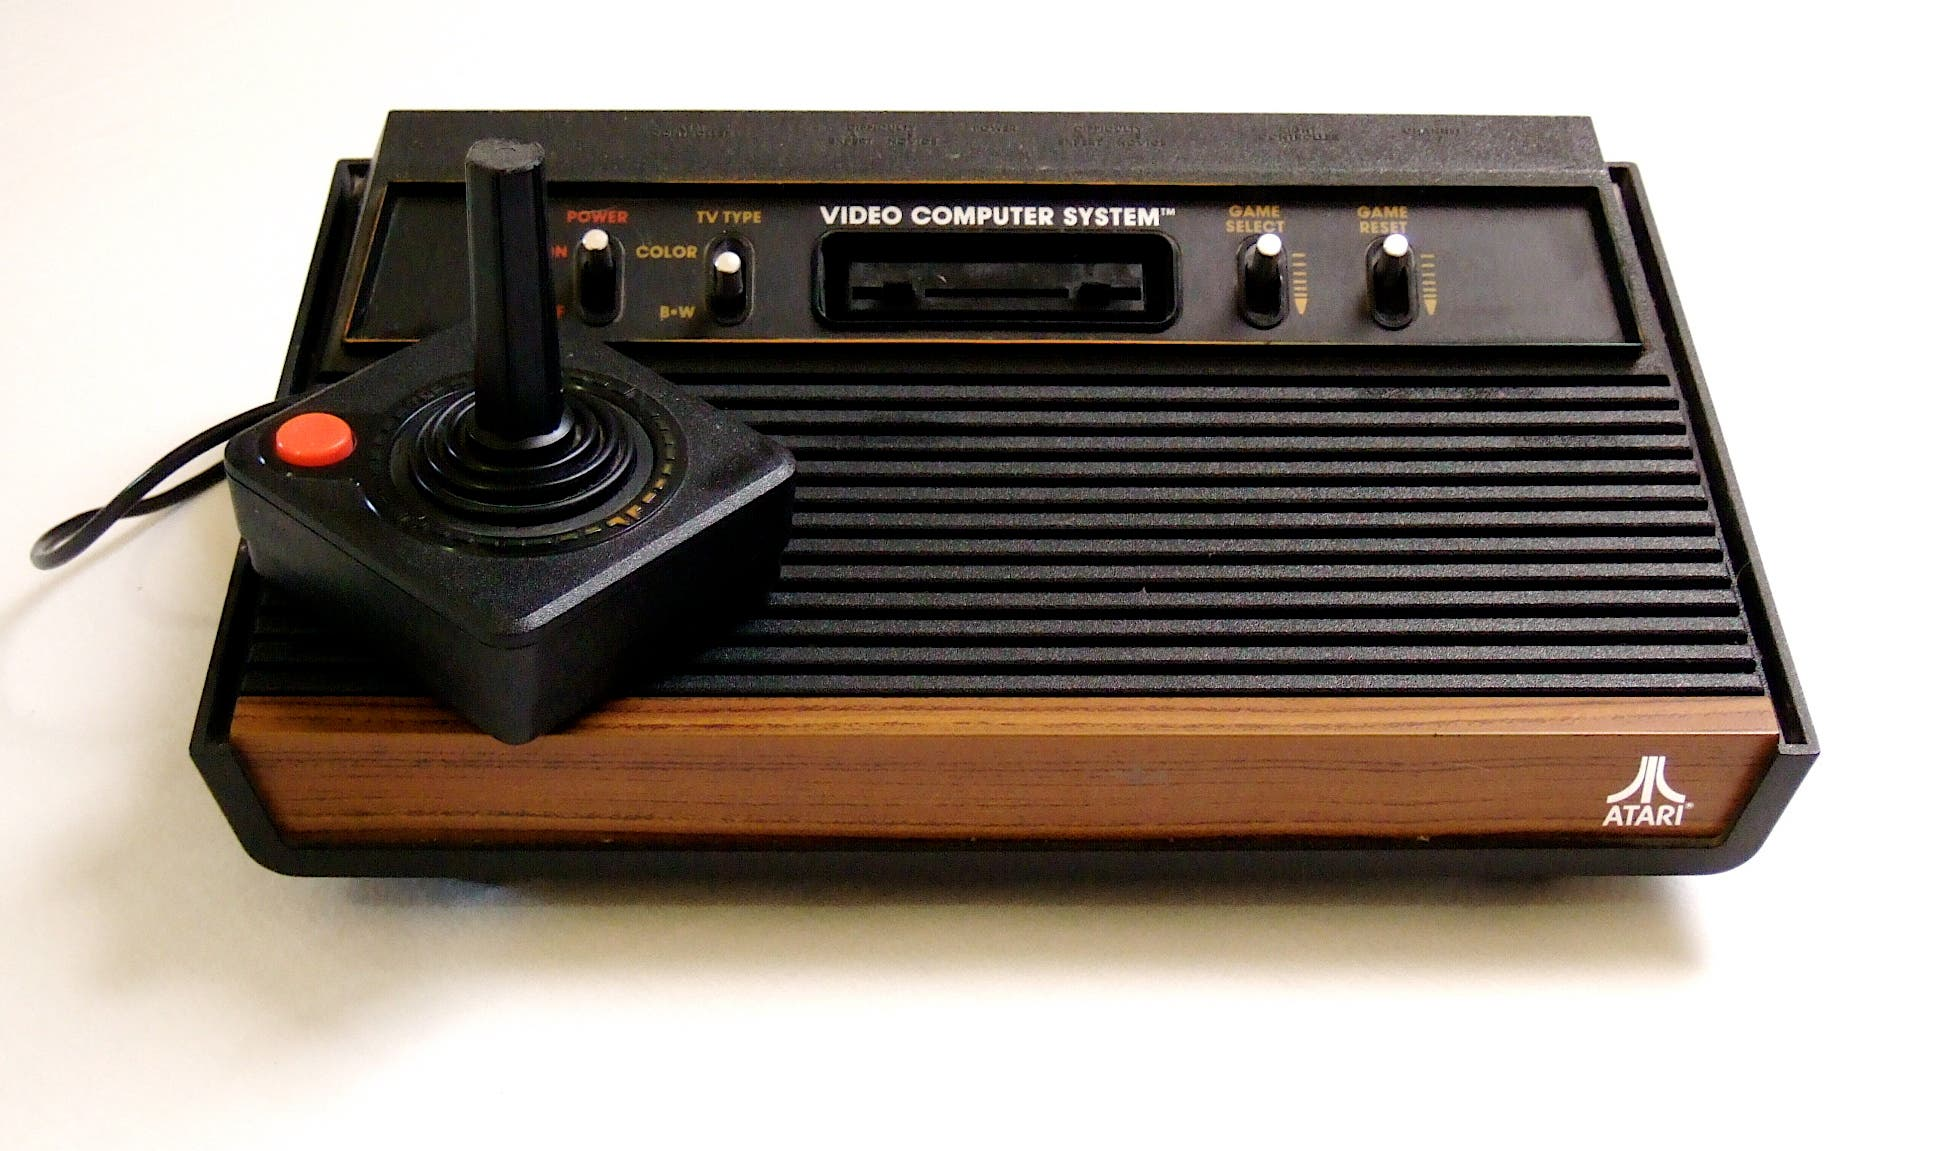 Internet of Things: Atari baut wieder Hardware